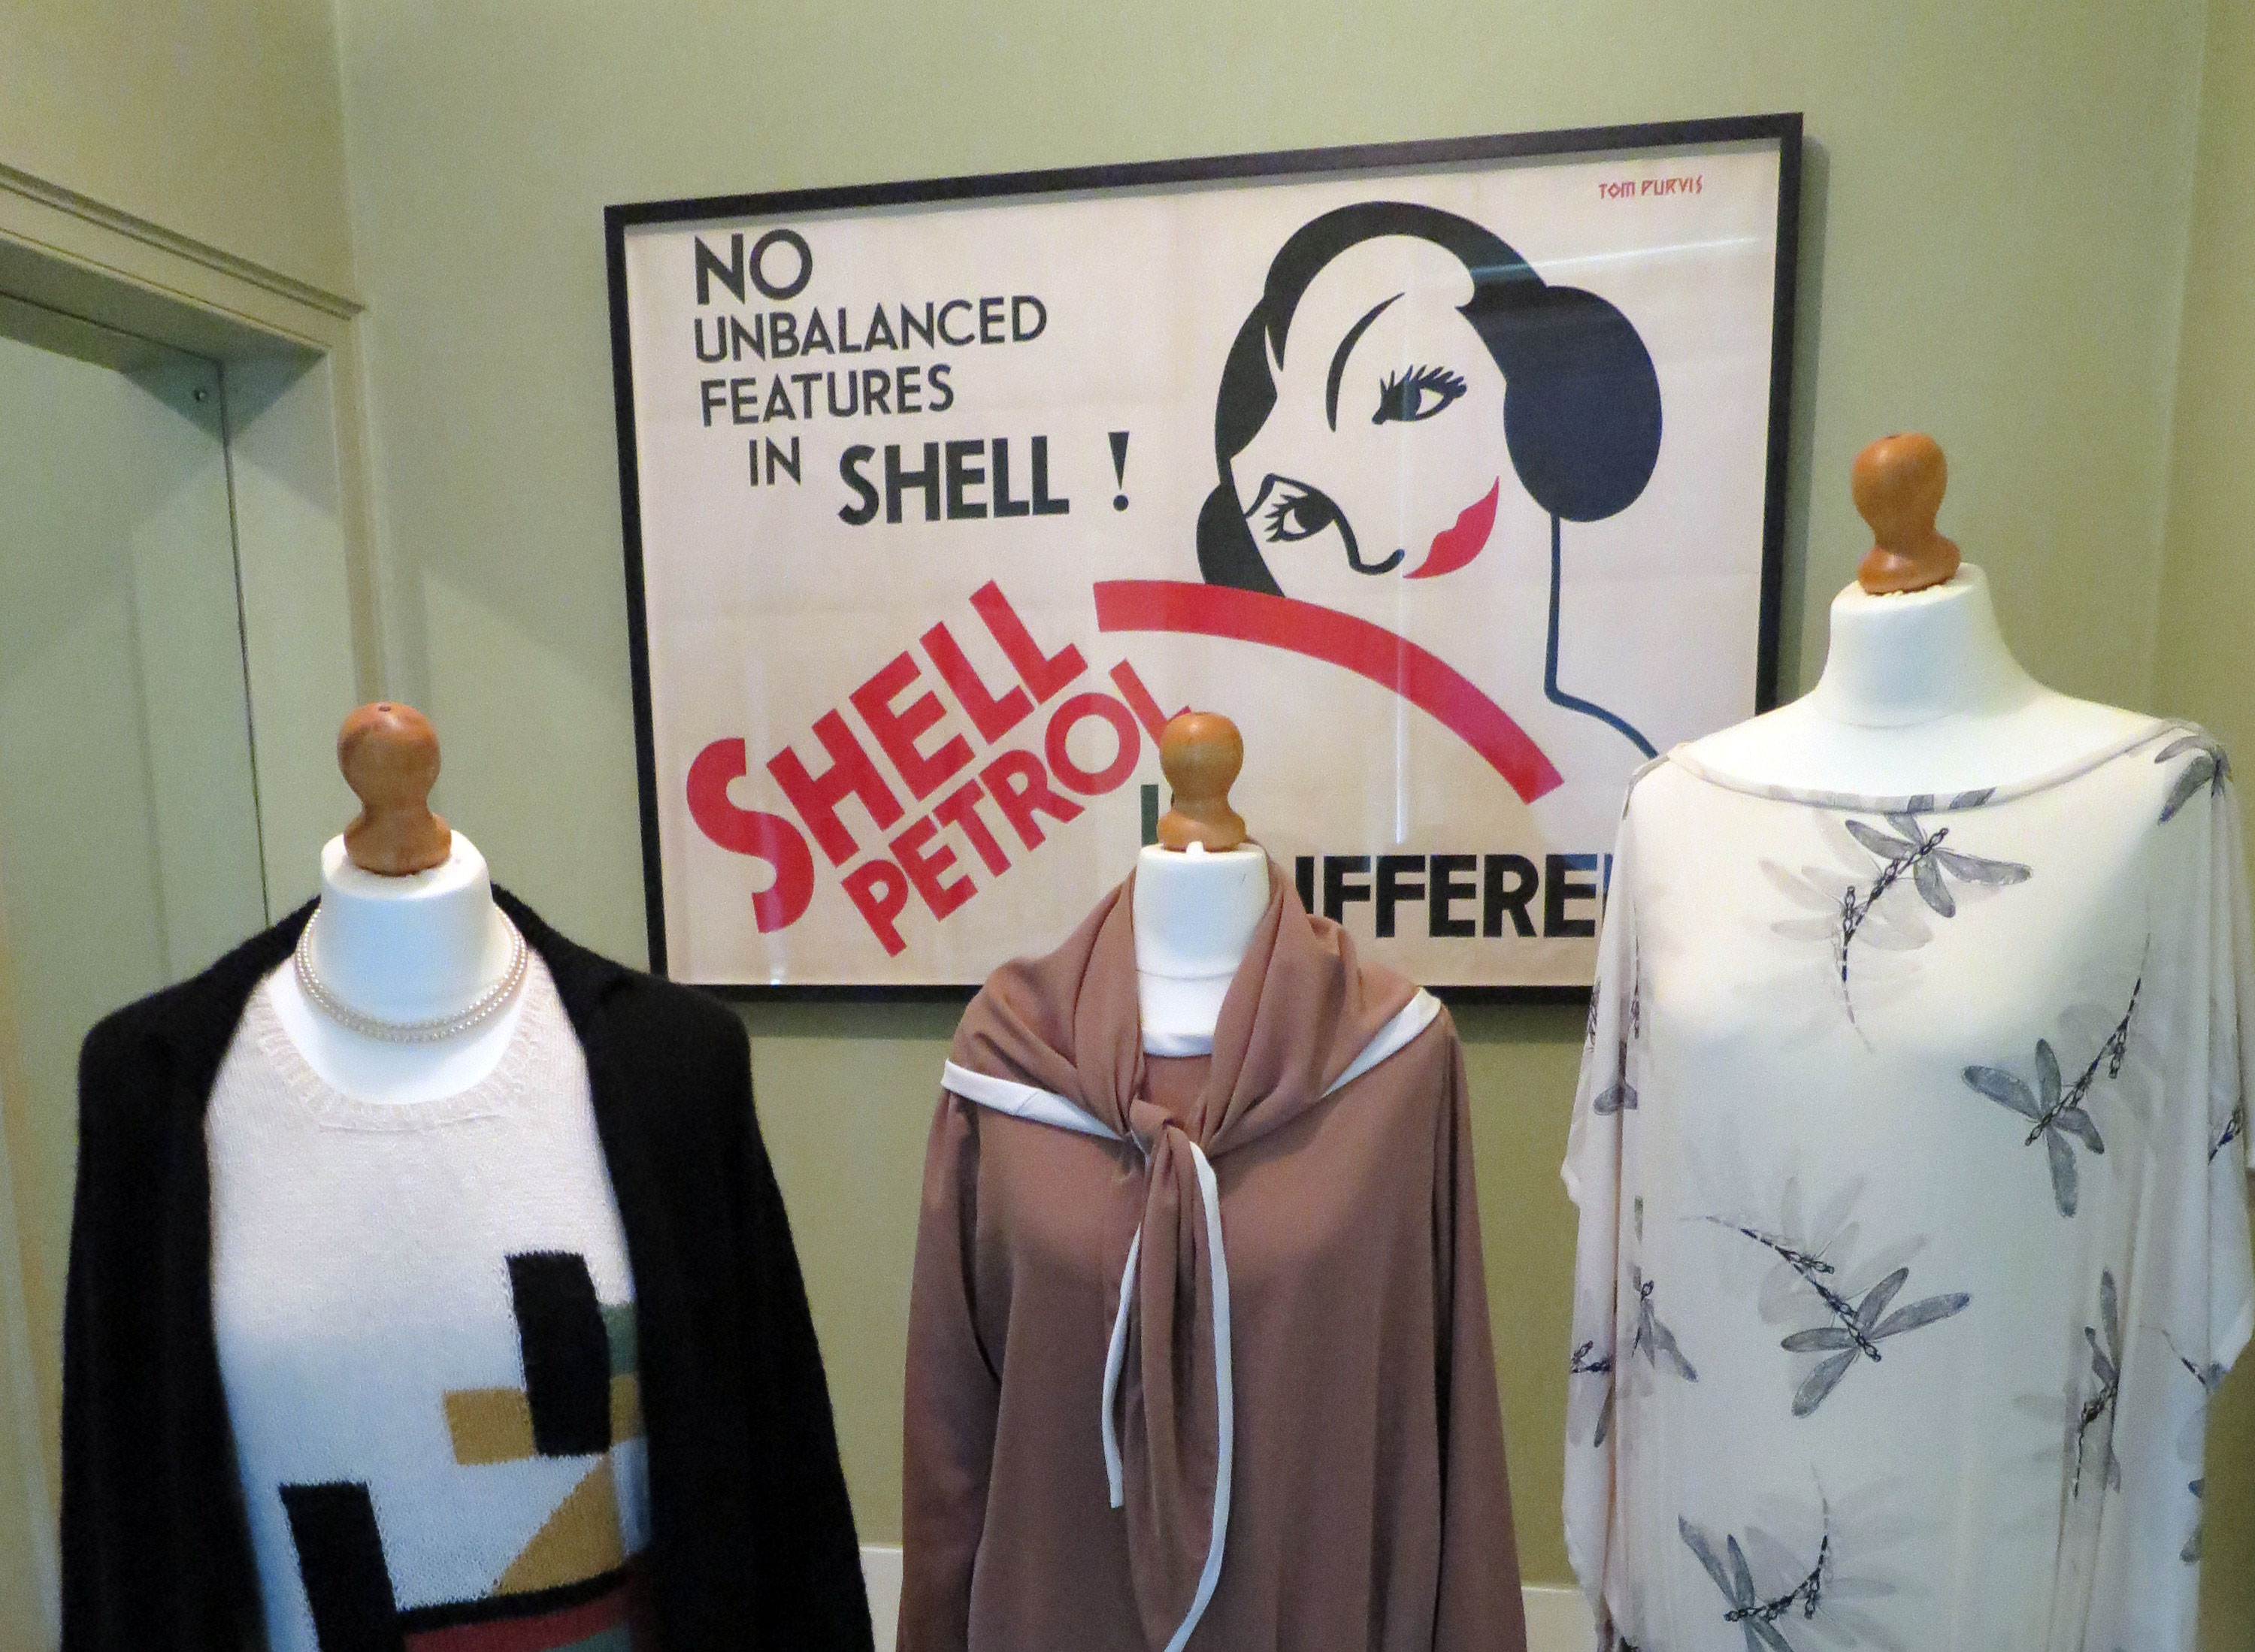 Upton House Exhibition 2018. 1930s Shell Poster behind costumes from the era